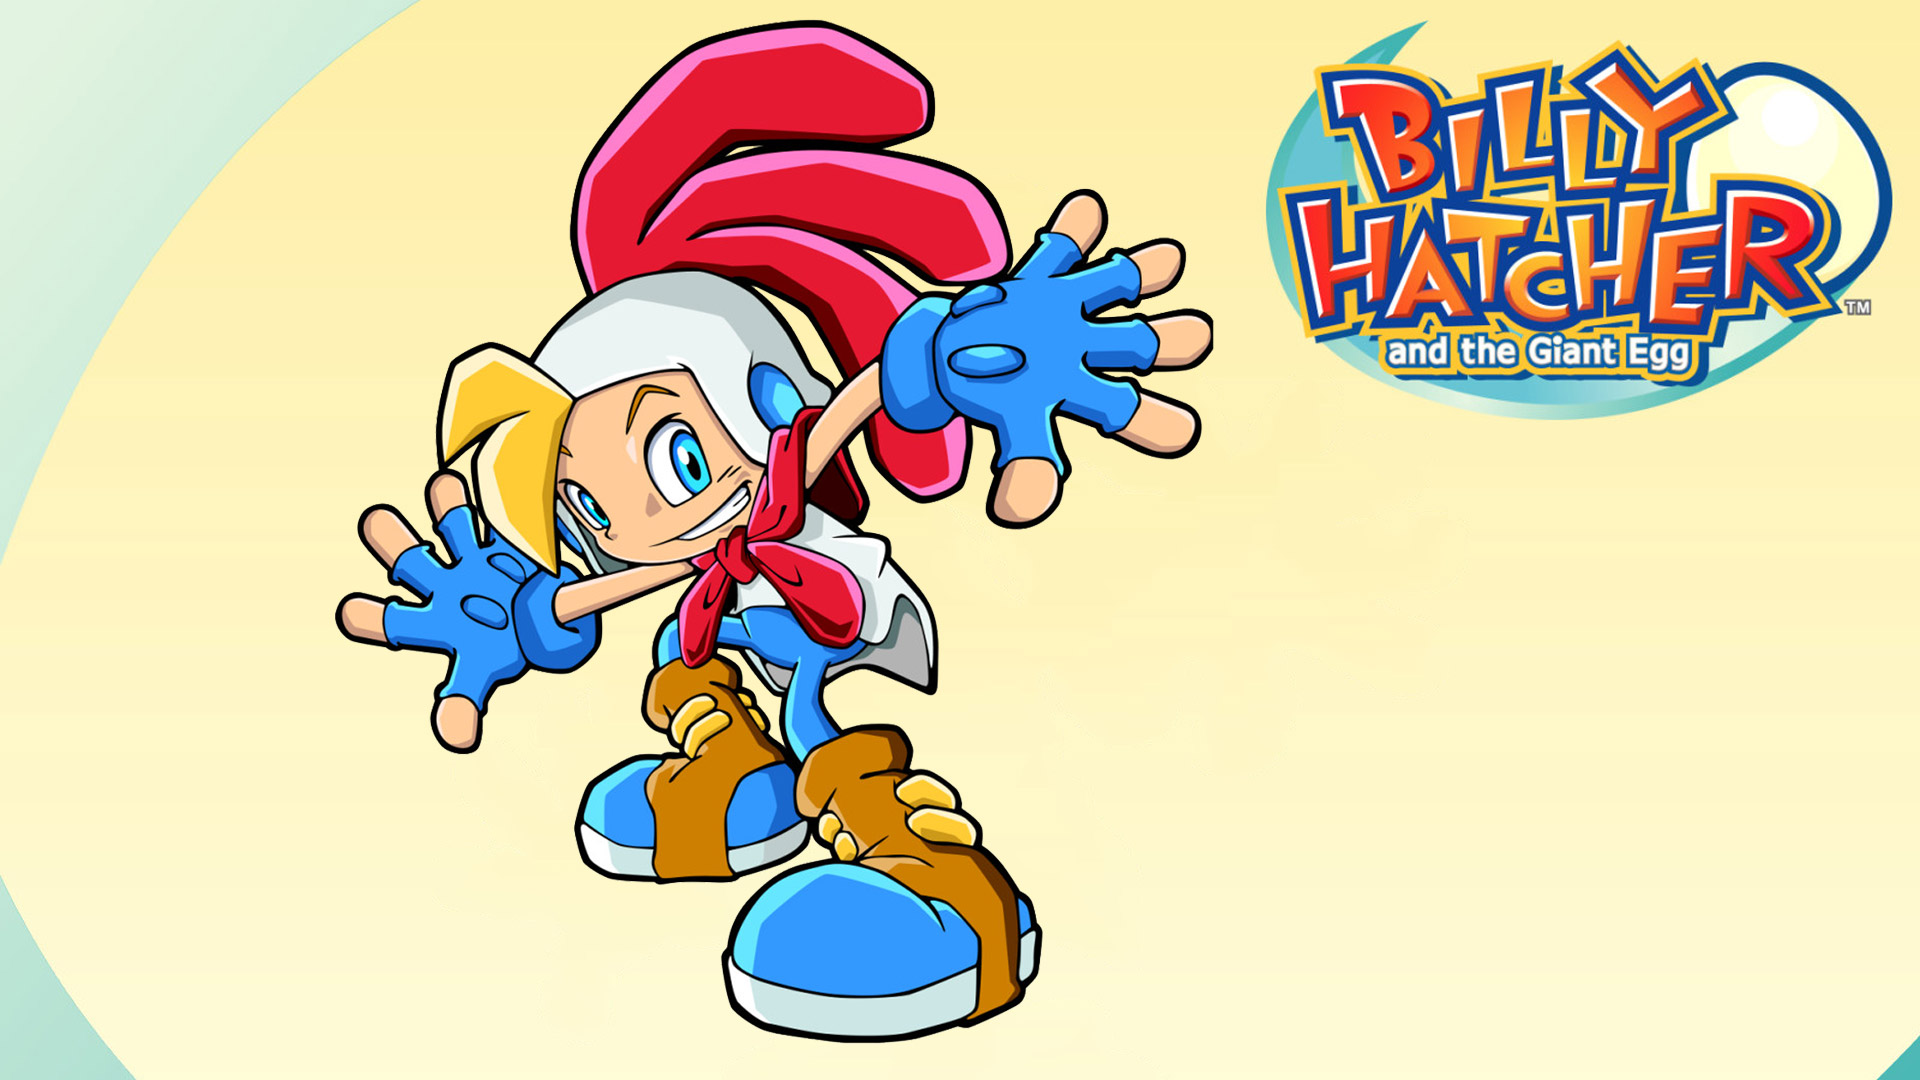 Free Billy Hatcher and the Giant Egg Wallpaper in 1920x1080